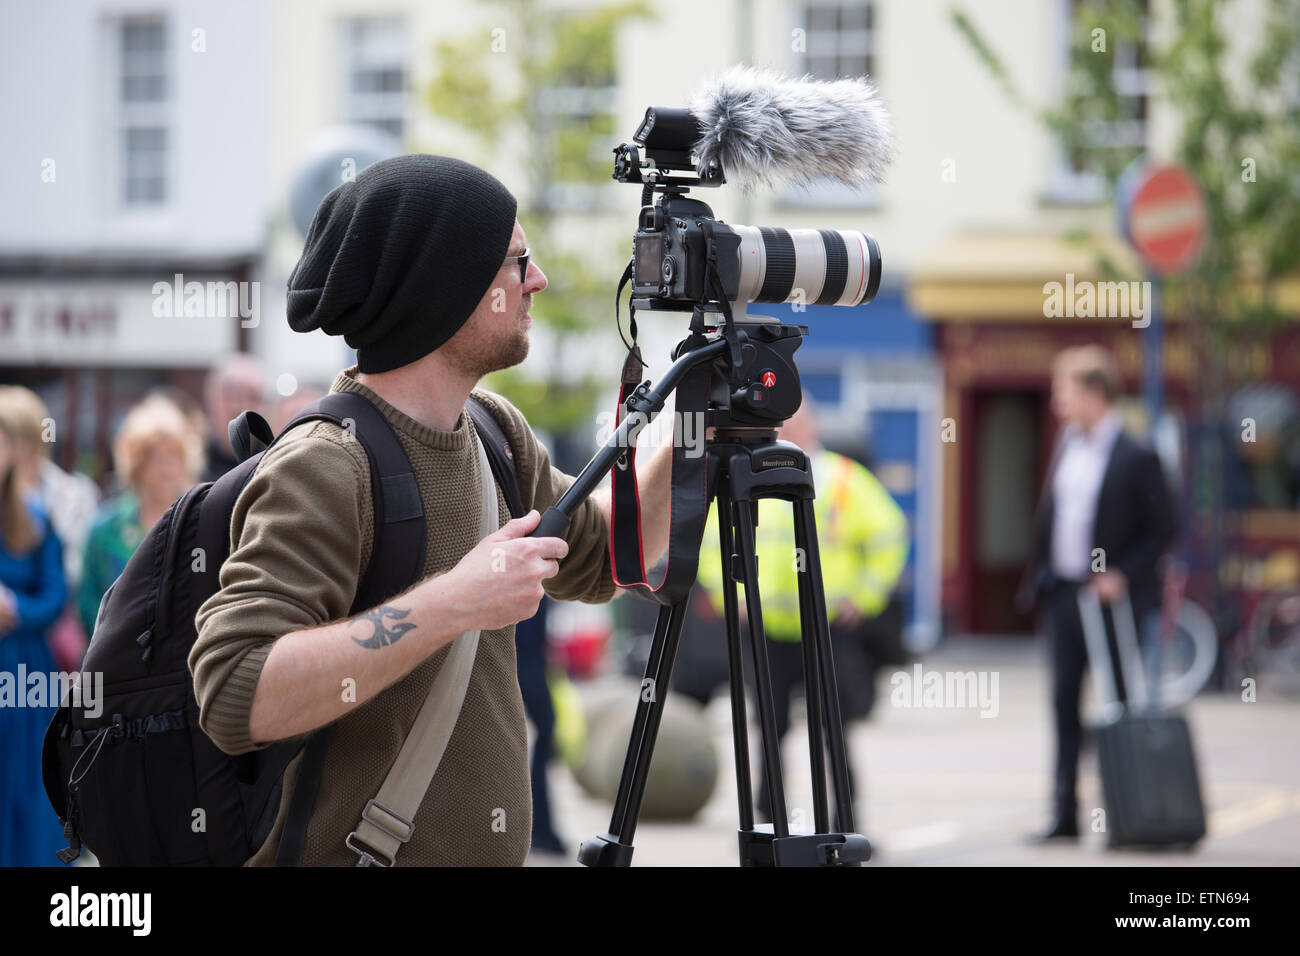 A cameraman filming at an outdoor event in Warwick using a digital SLR camera on a tripod - Stock Image